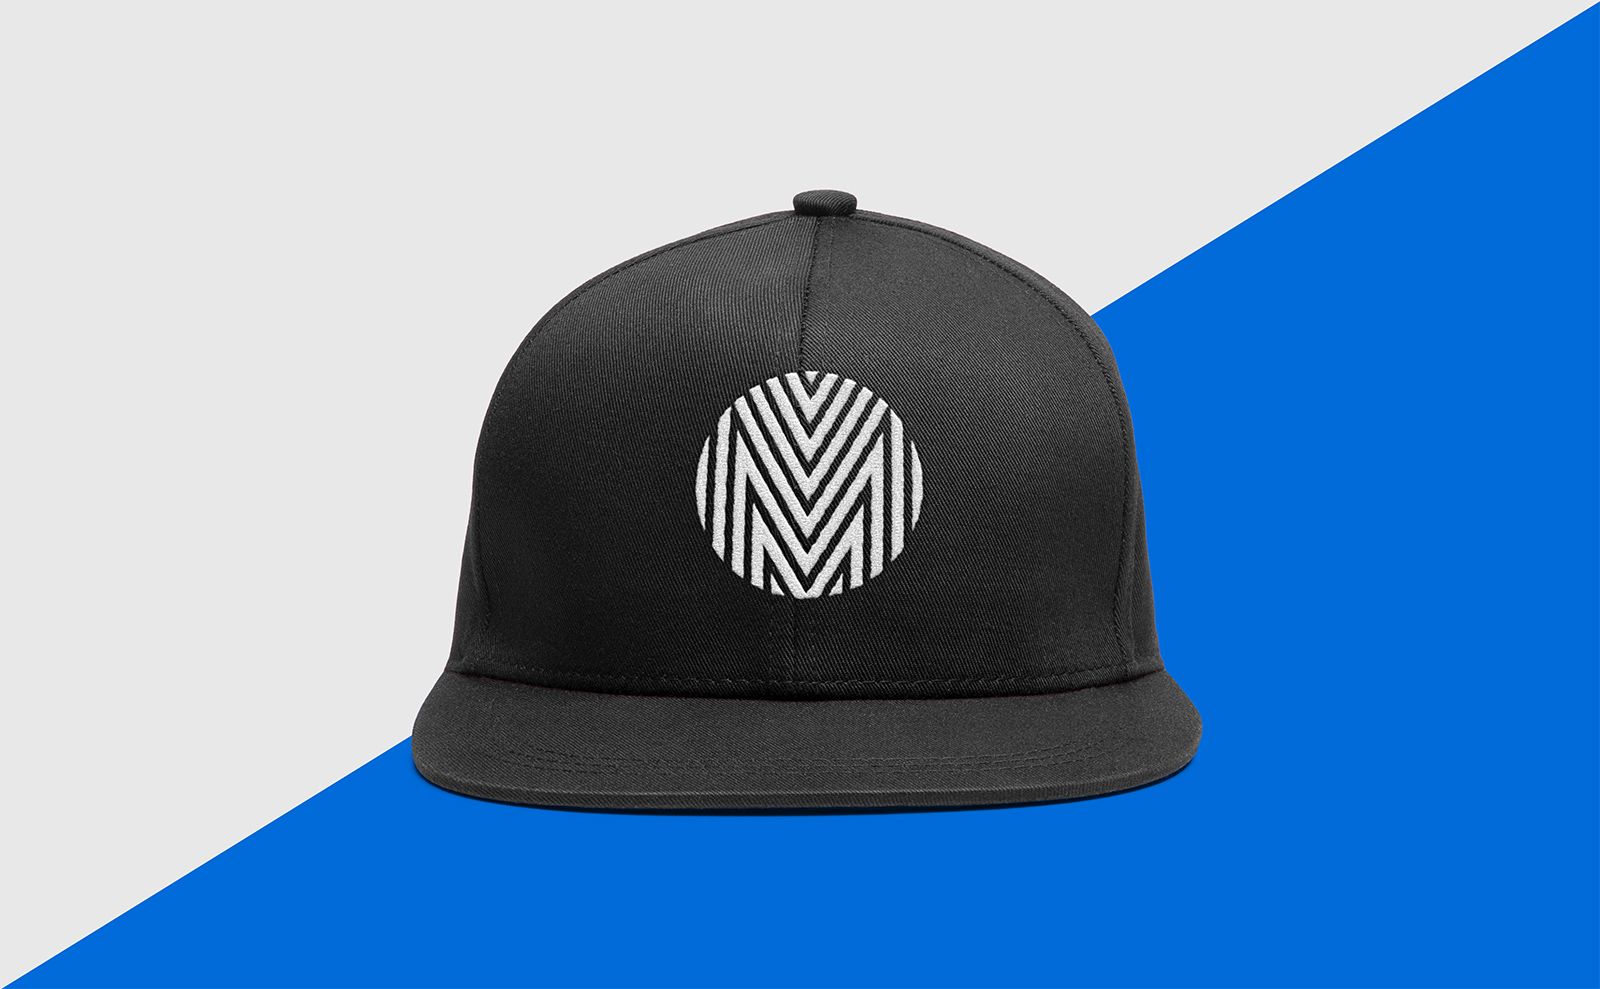 Global Minnesota black cap with logo